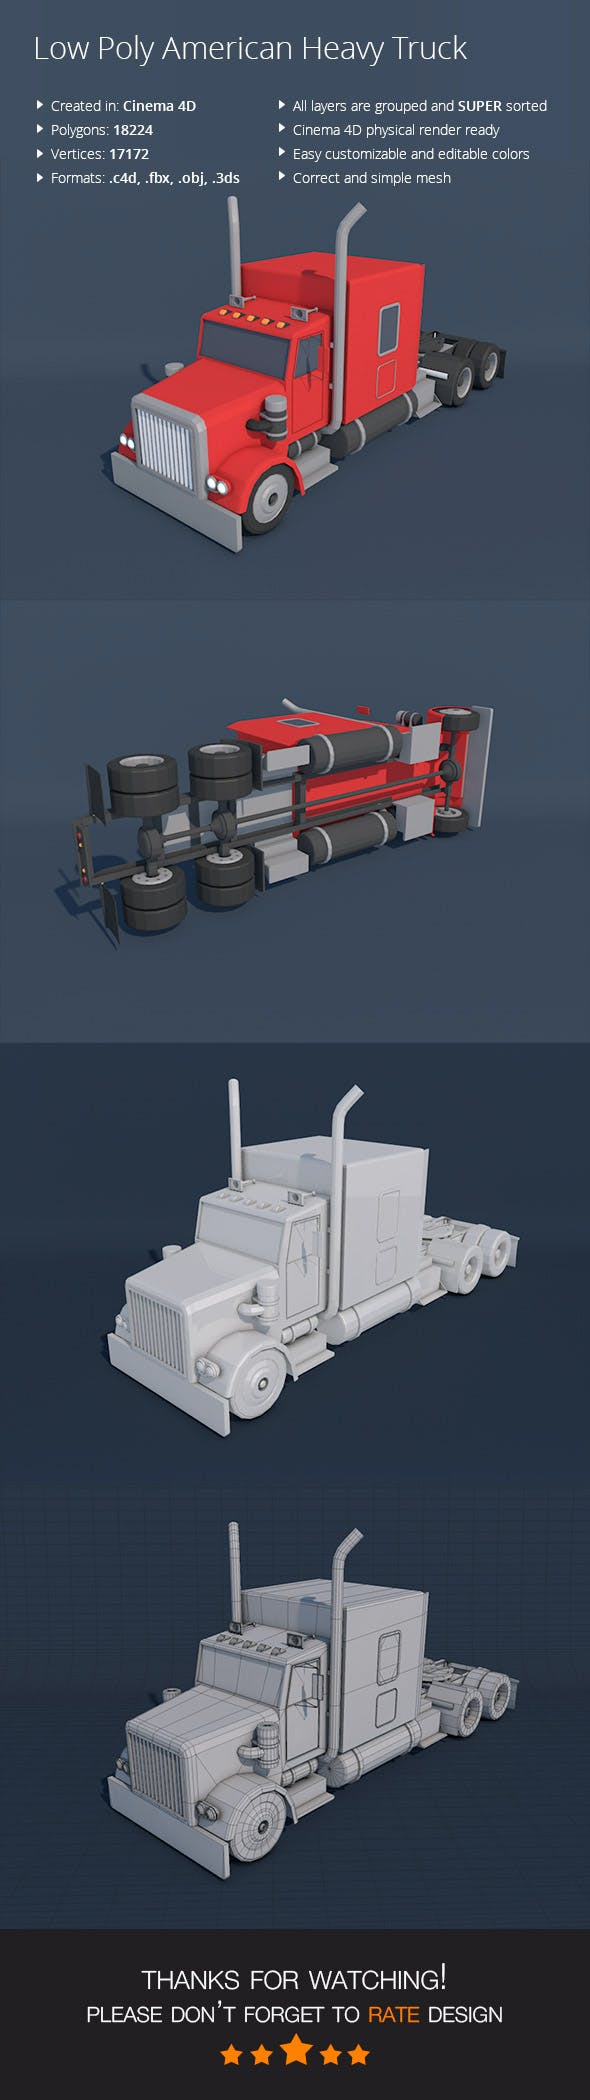 Low Poly American Heavy Truck - 3DOcean Item for Sale